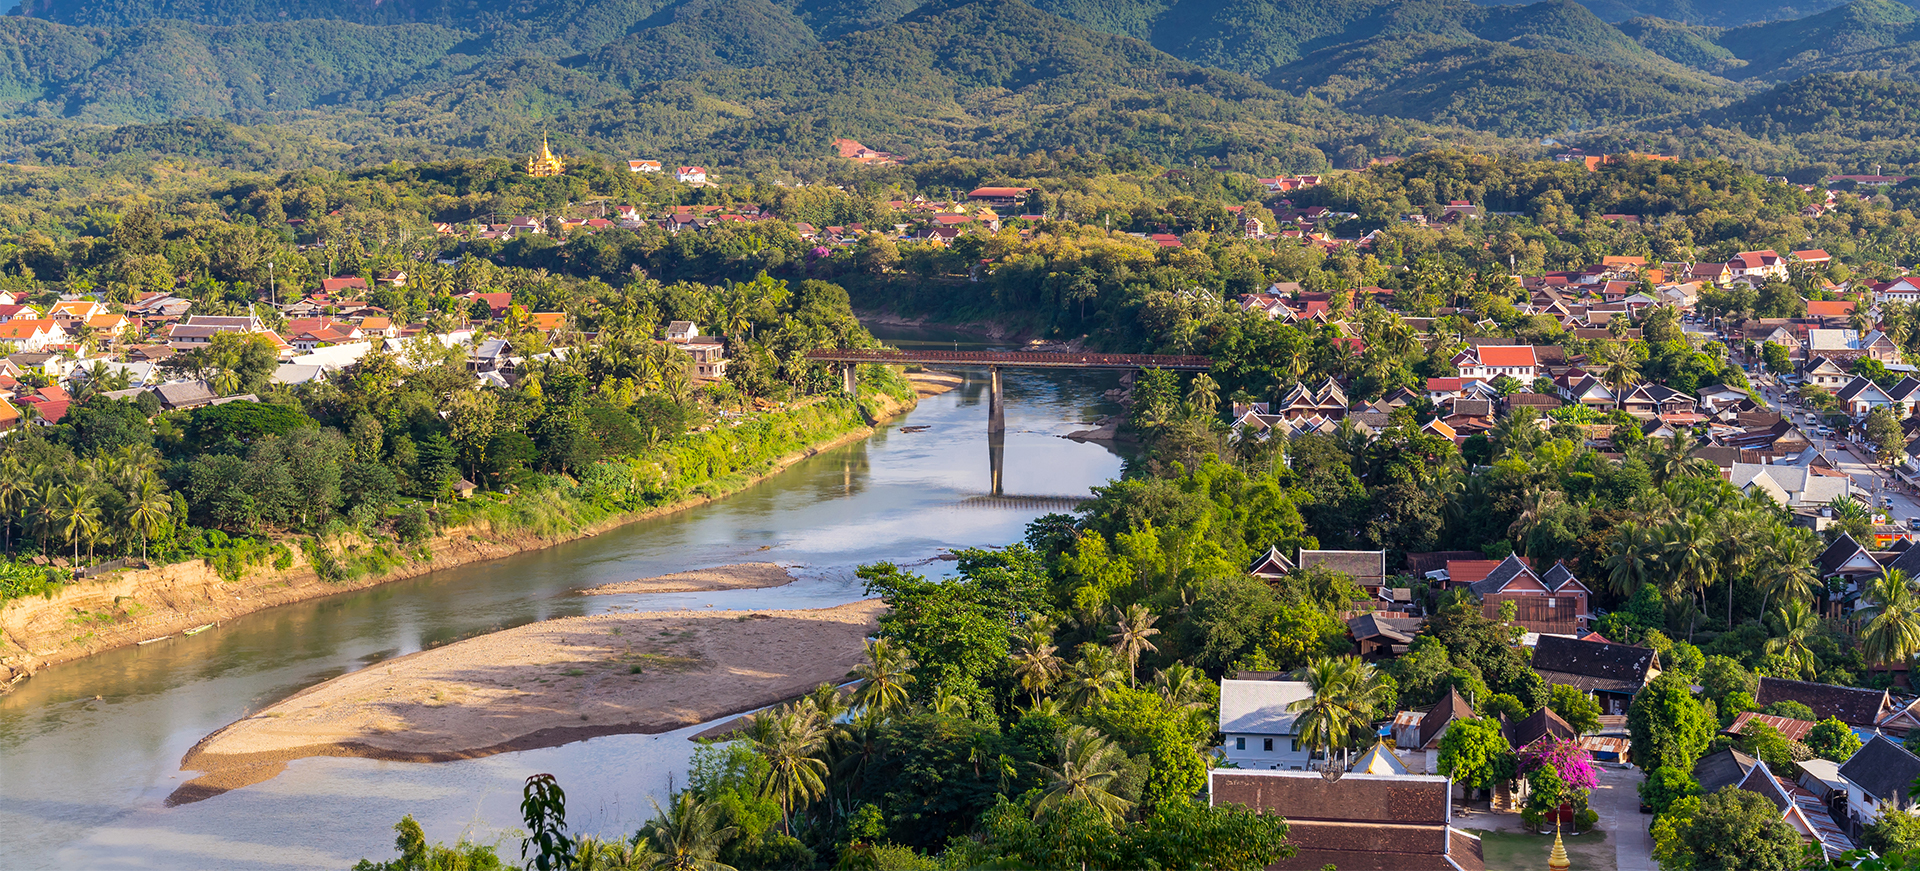 Laos-in-style-Thumb-Resize-H.jpg